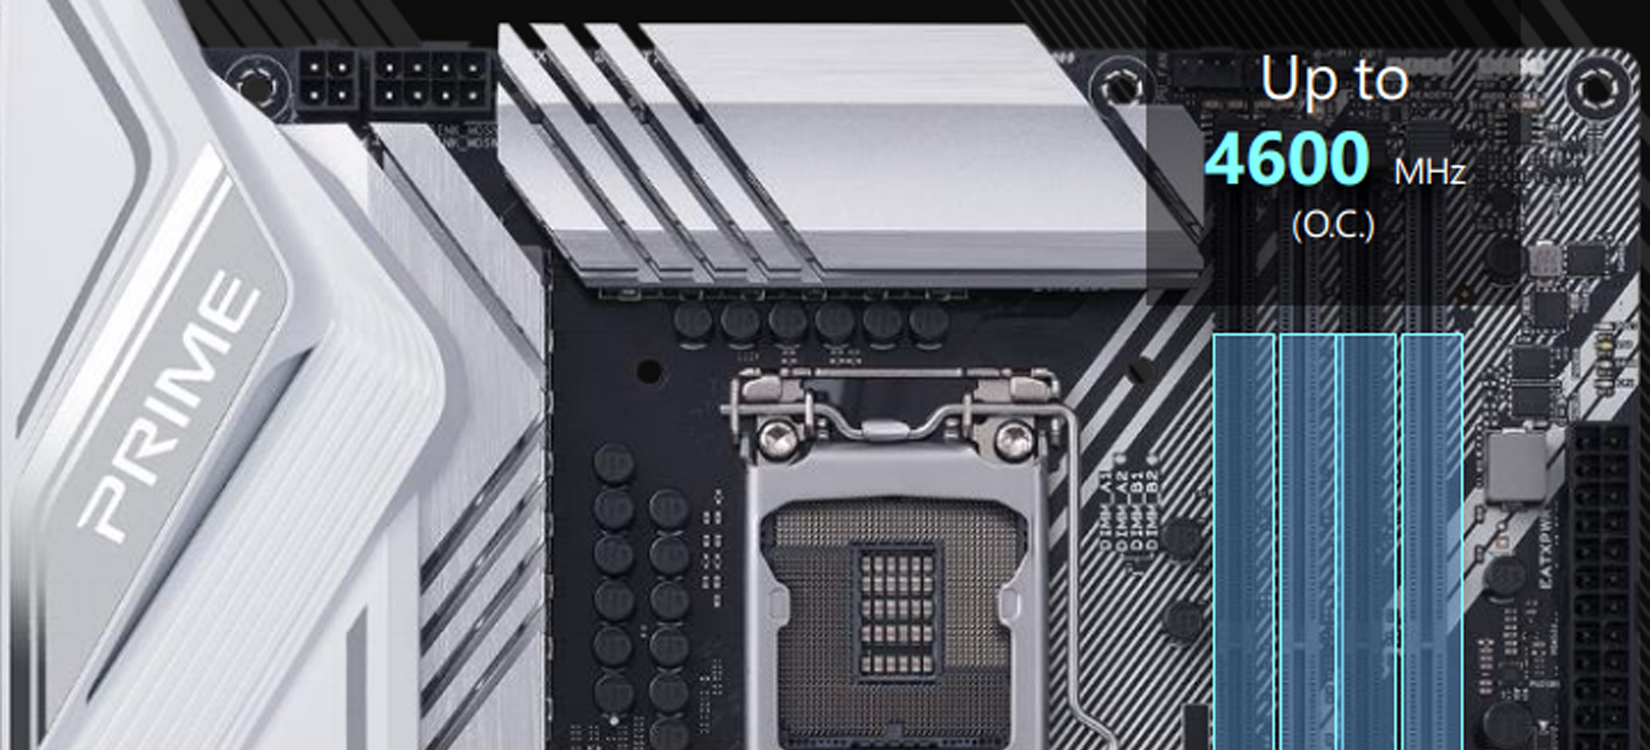 Mainboard ASUS PRIME Z490-P giá tốt